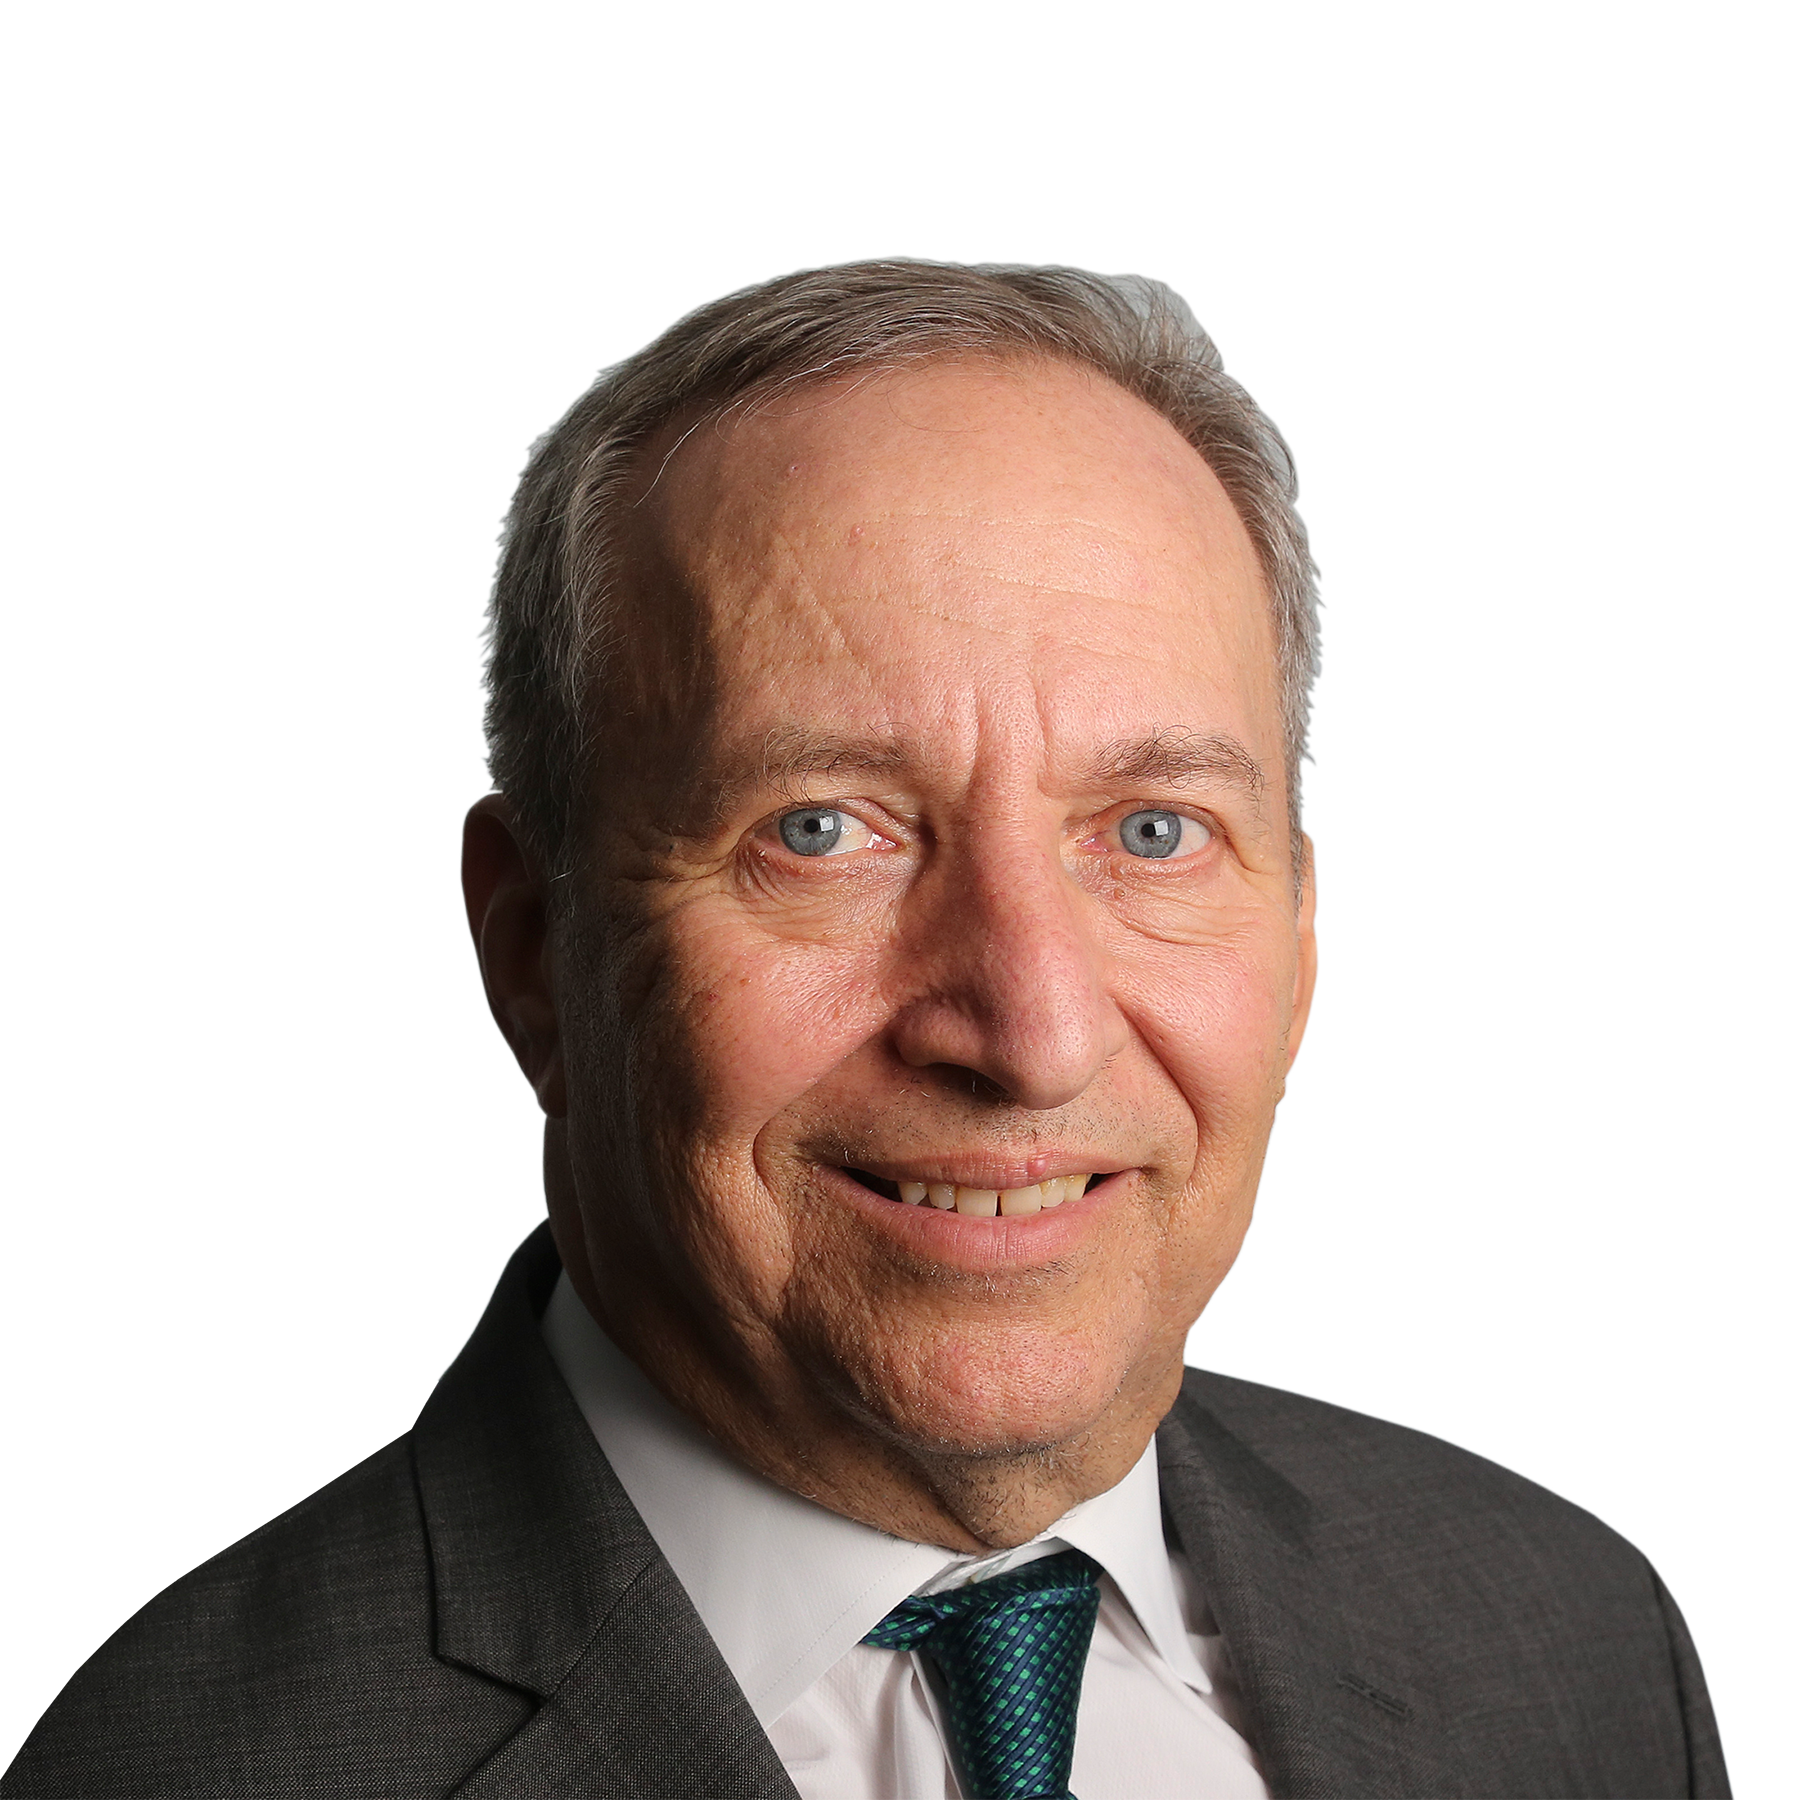 Image of Lawrence Summers